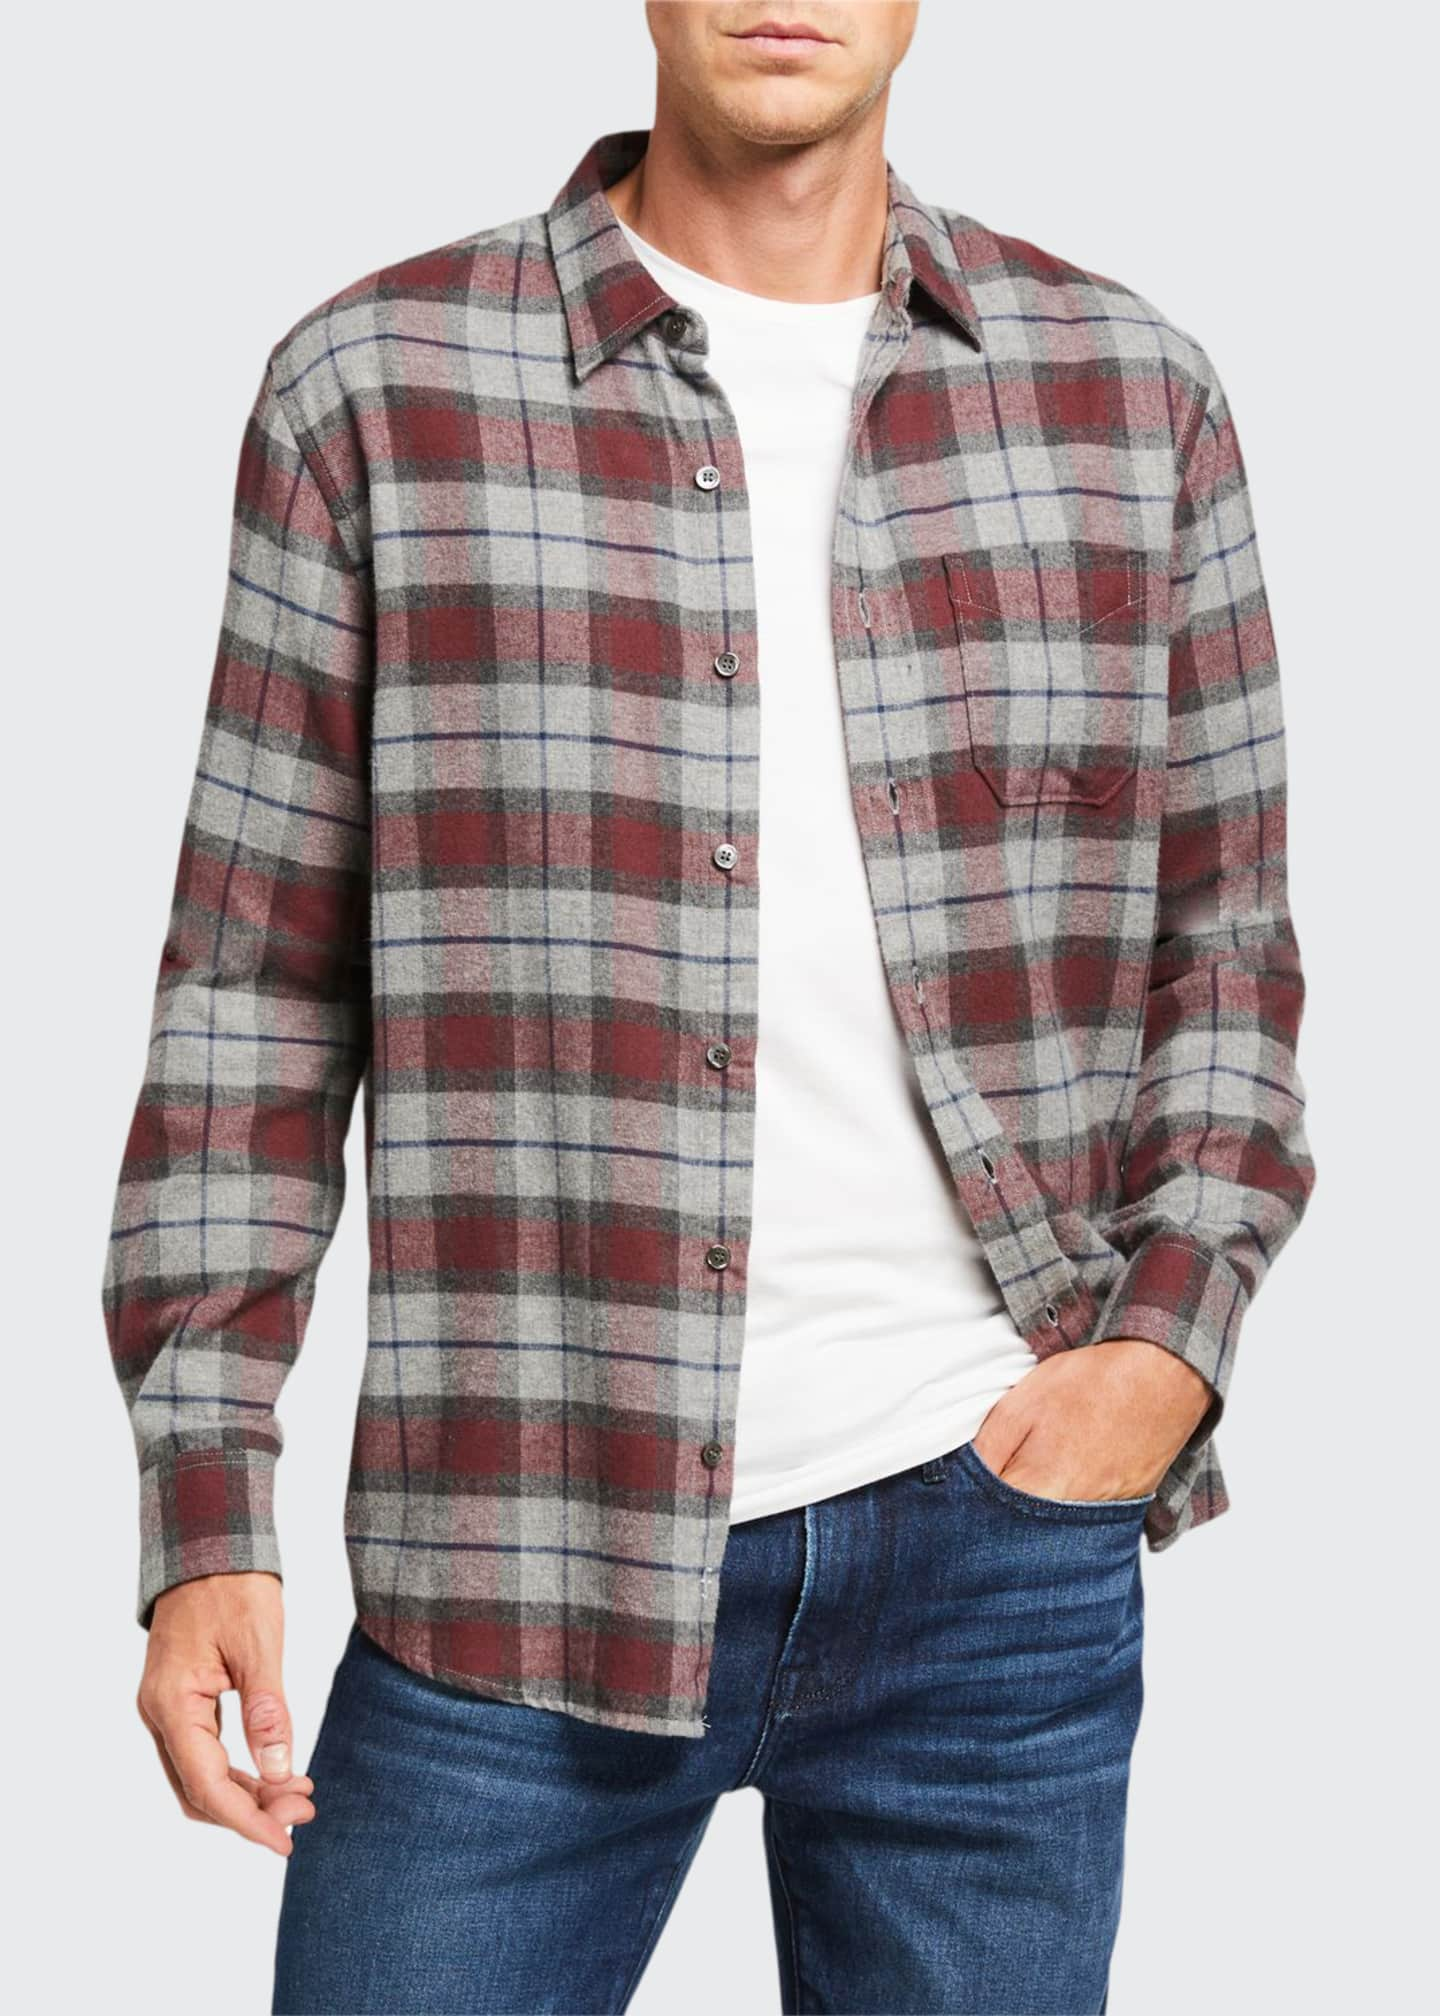 FRAME Men's Classic Brushed Plaid Sport Shirt